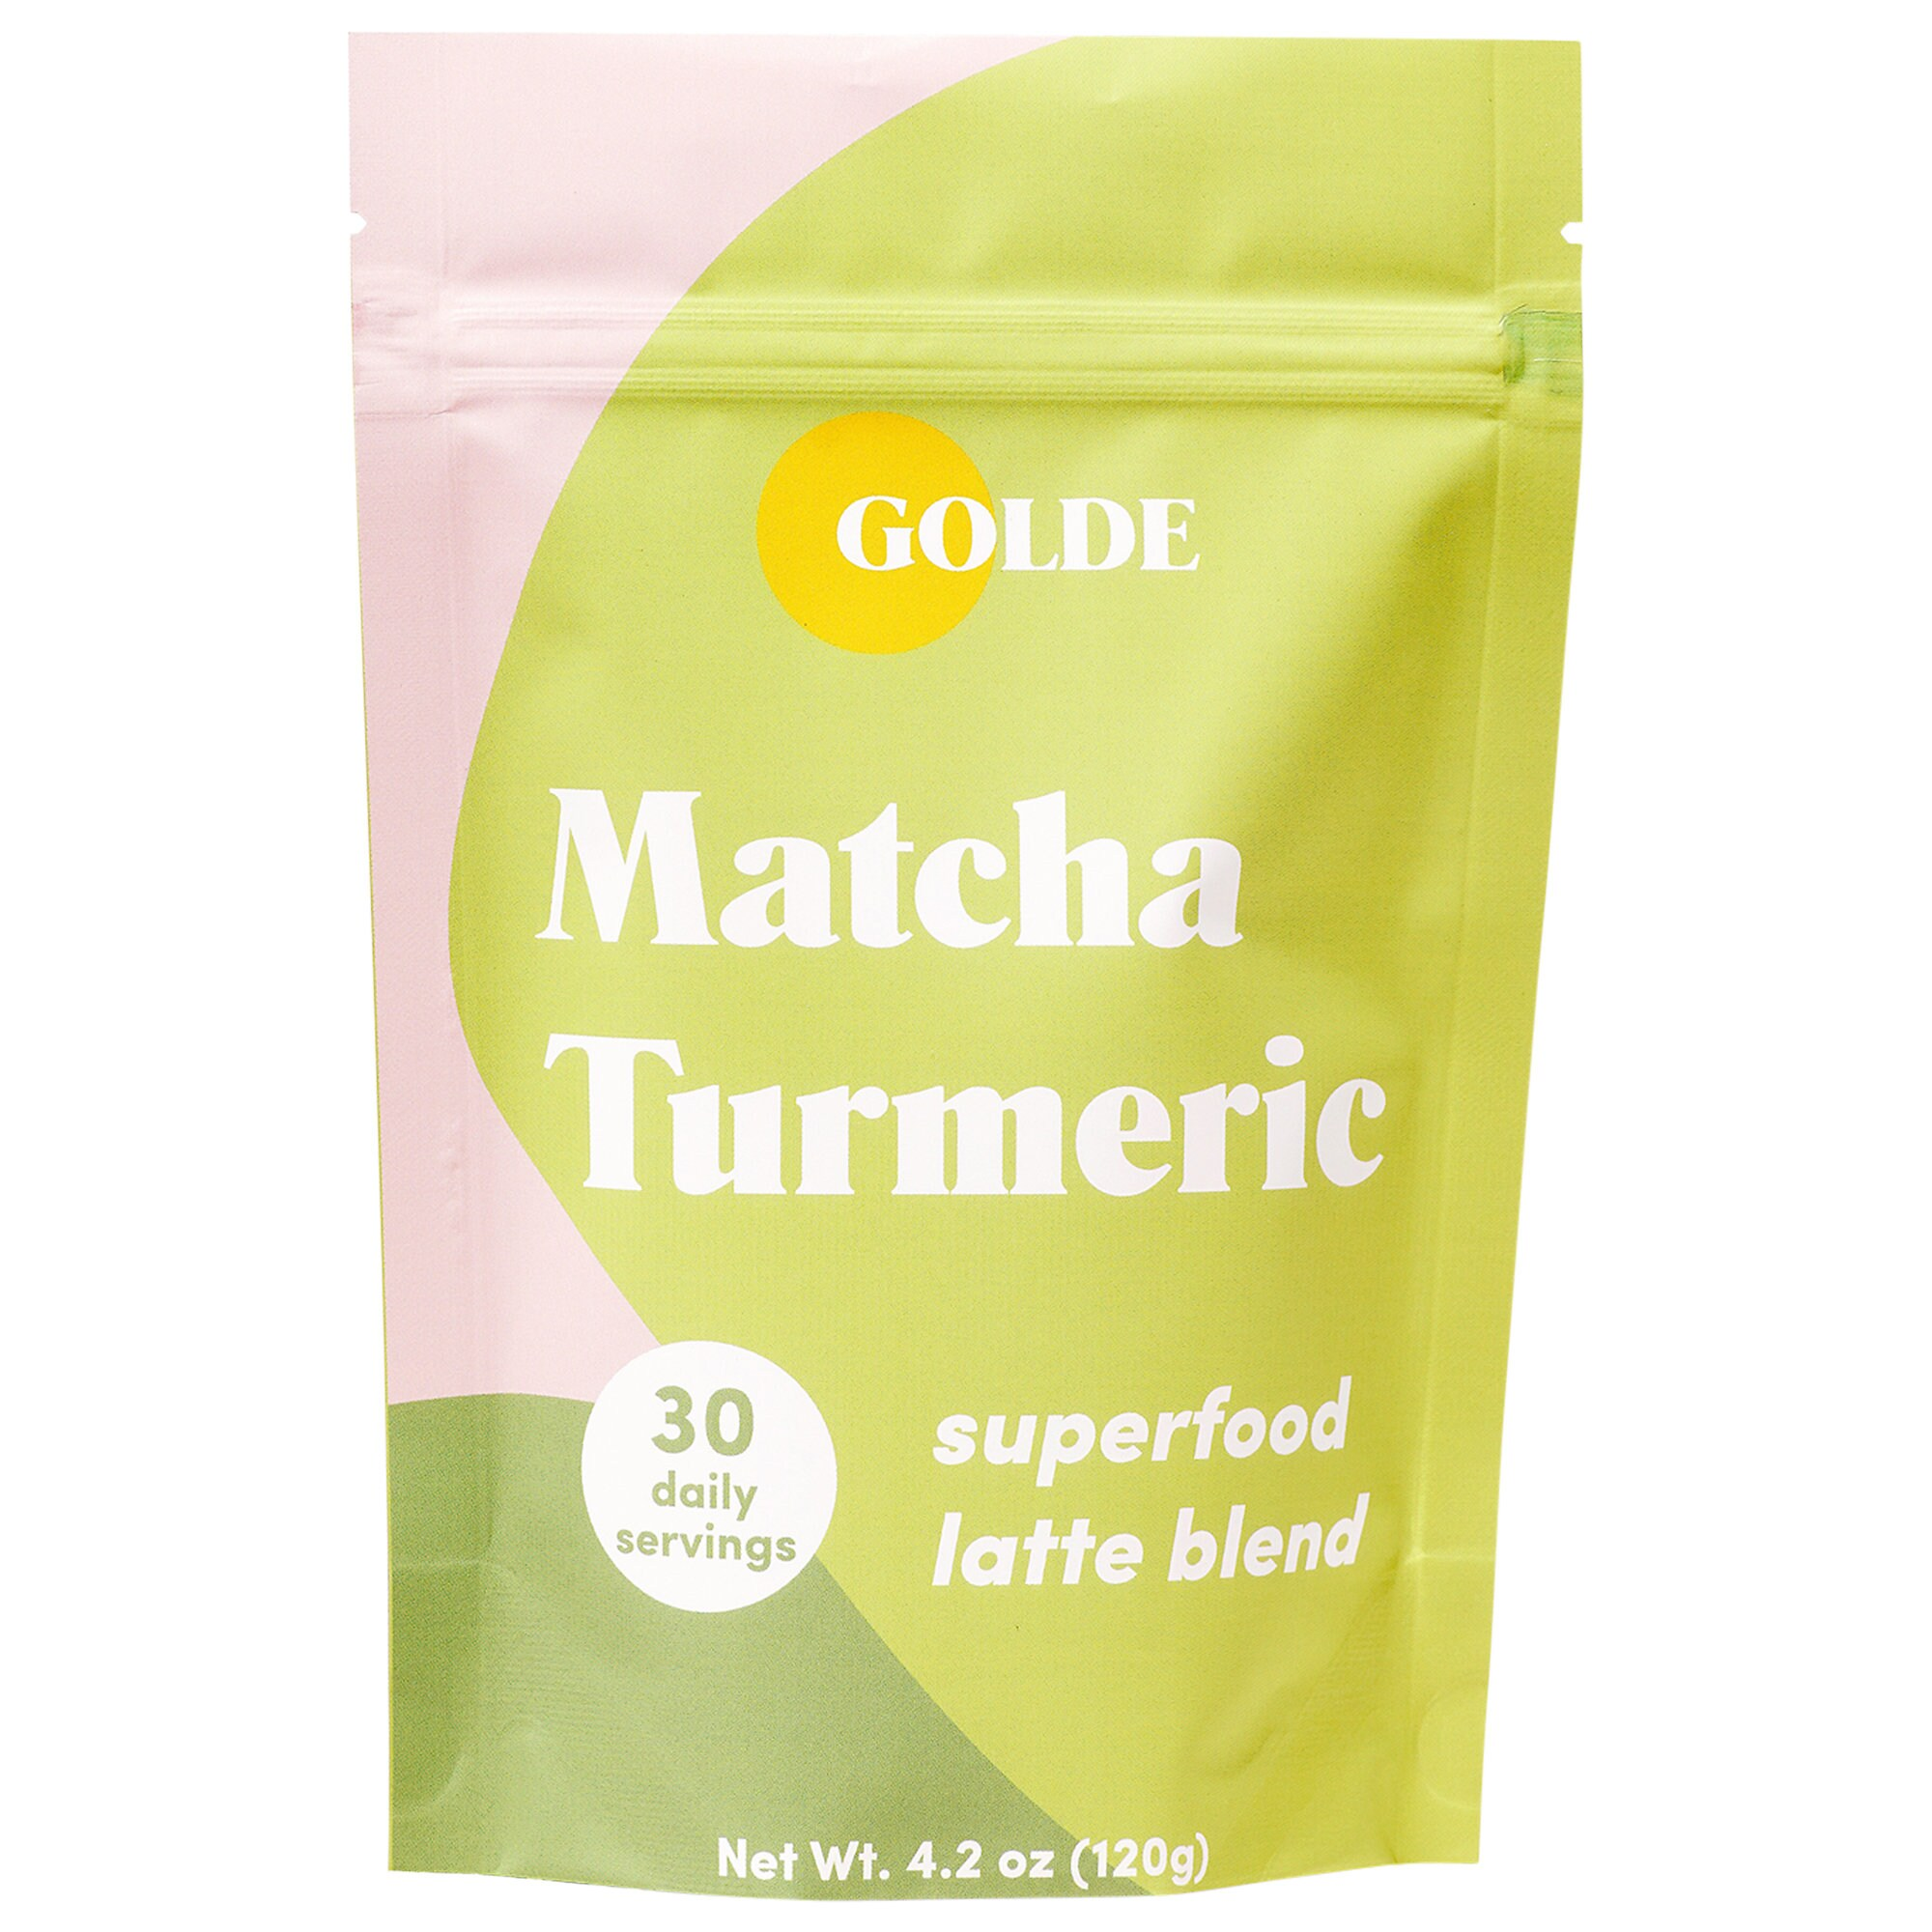 Golde - Matcha Turmeric Latte Blend for skin glow + metabolism